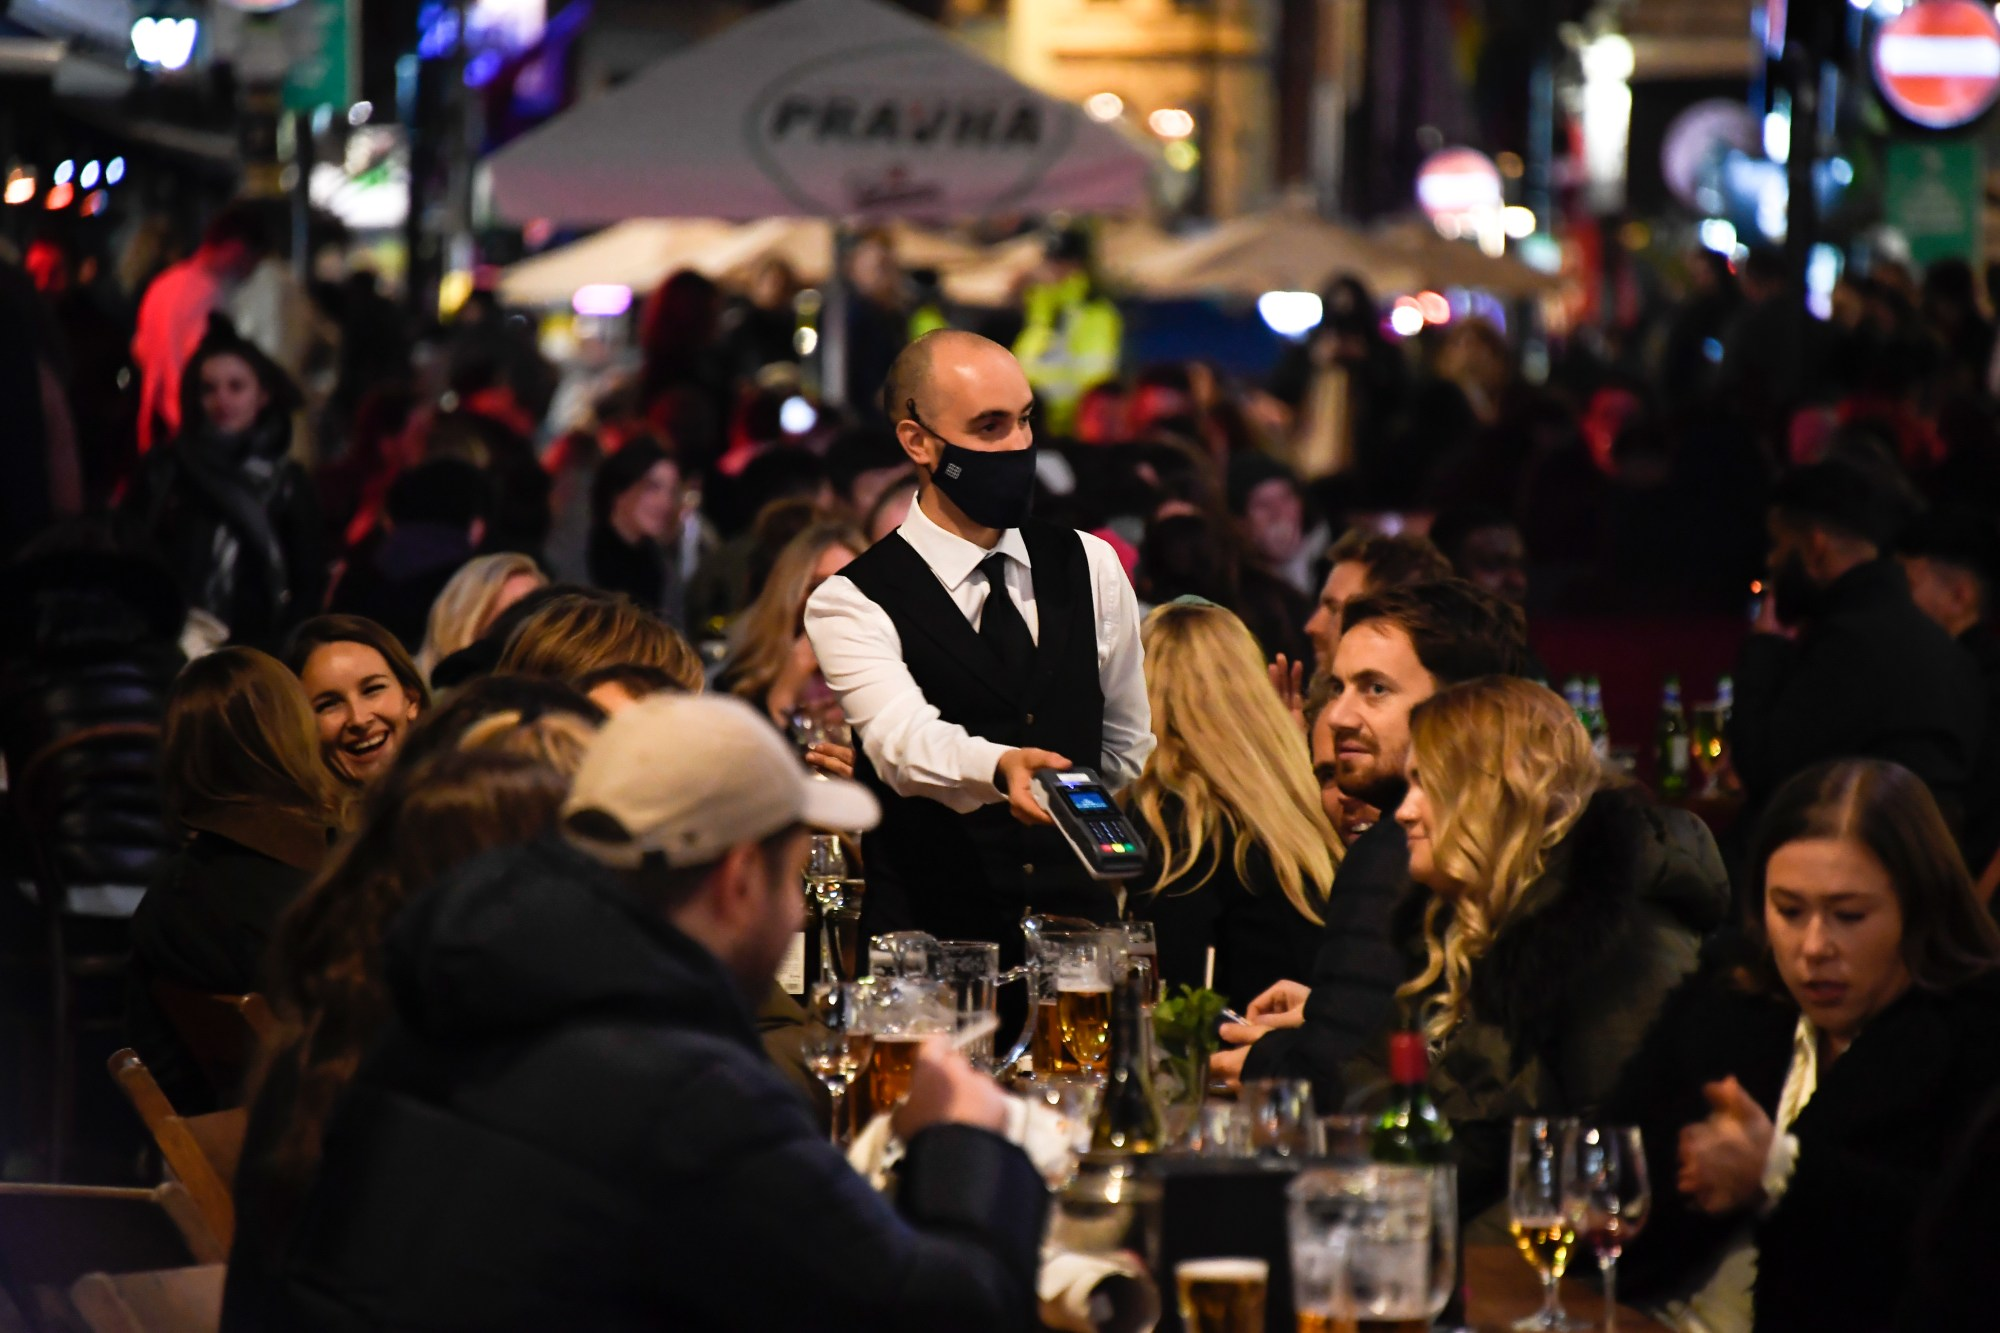 In this Wednesday, Nov. 4, 2020 file photo, a waiter wears a face mask as people eat and drink outside restaurants in Soho, in London. British Prime Minister Boris Johnson is expected to confirm Monday June 14, 2021, that the next planned relaxation of coronavirus restrictions in England will be delayed as a result of the spread of the delta variant first identified in India. (AP Photo/Alberto Pezzali, File)